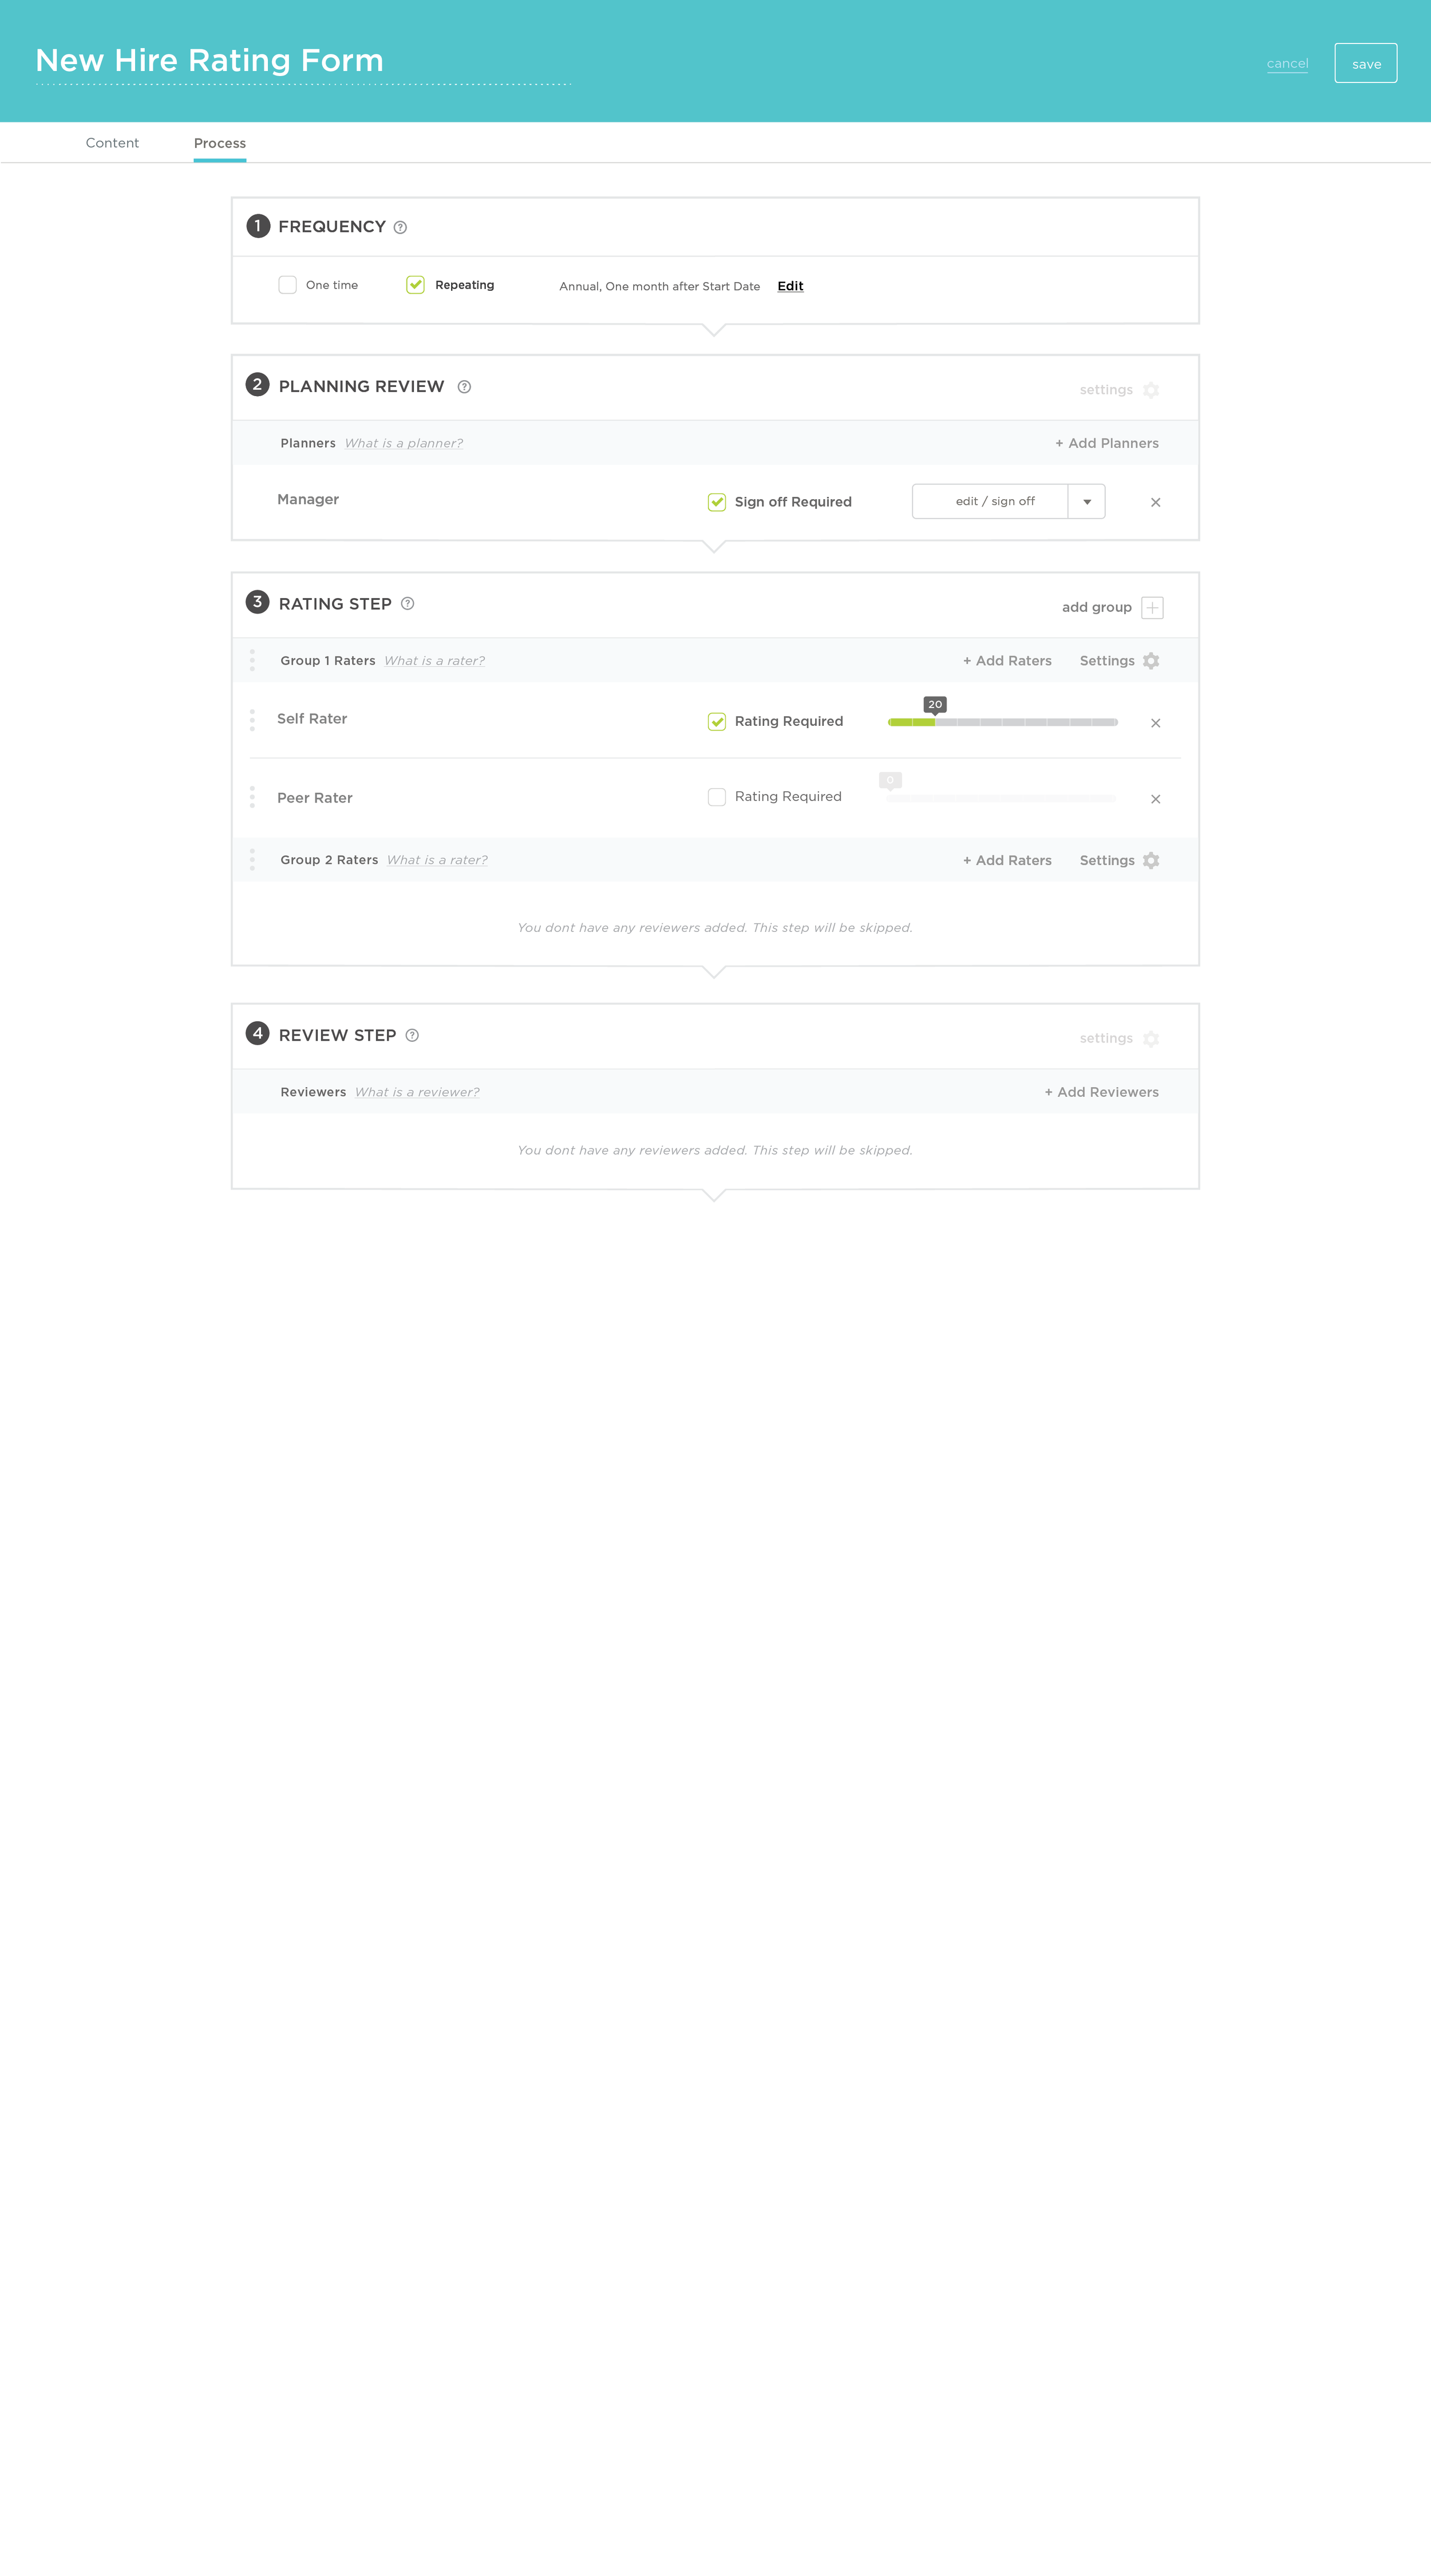 Invision_Pe_rating-form-process_03_15.png